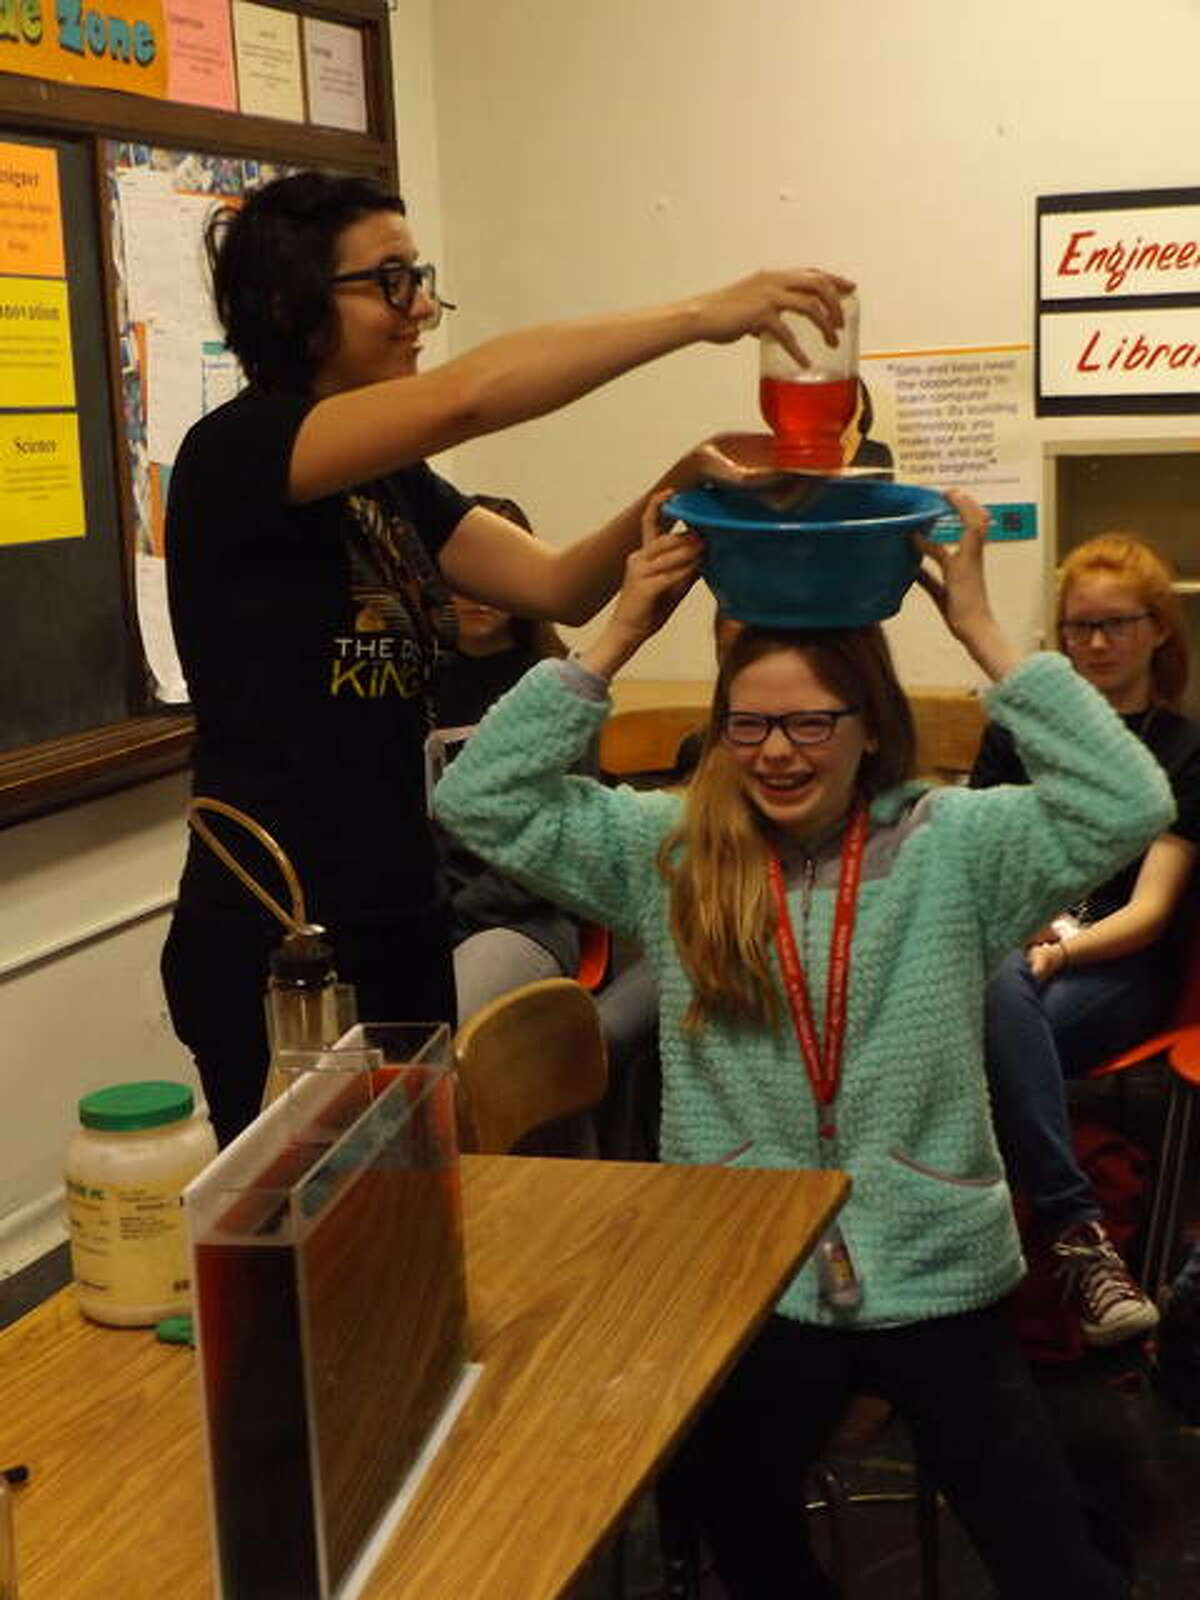 Cassandra Schneider, left, of the St. Louis Science Center's Public Programs Department, demonstrates that the surface tension of water against a screen will prevent liquid from spilling out of a jar. A student volunteer, meanwhile, hopes not to get drenched in the process.